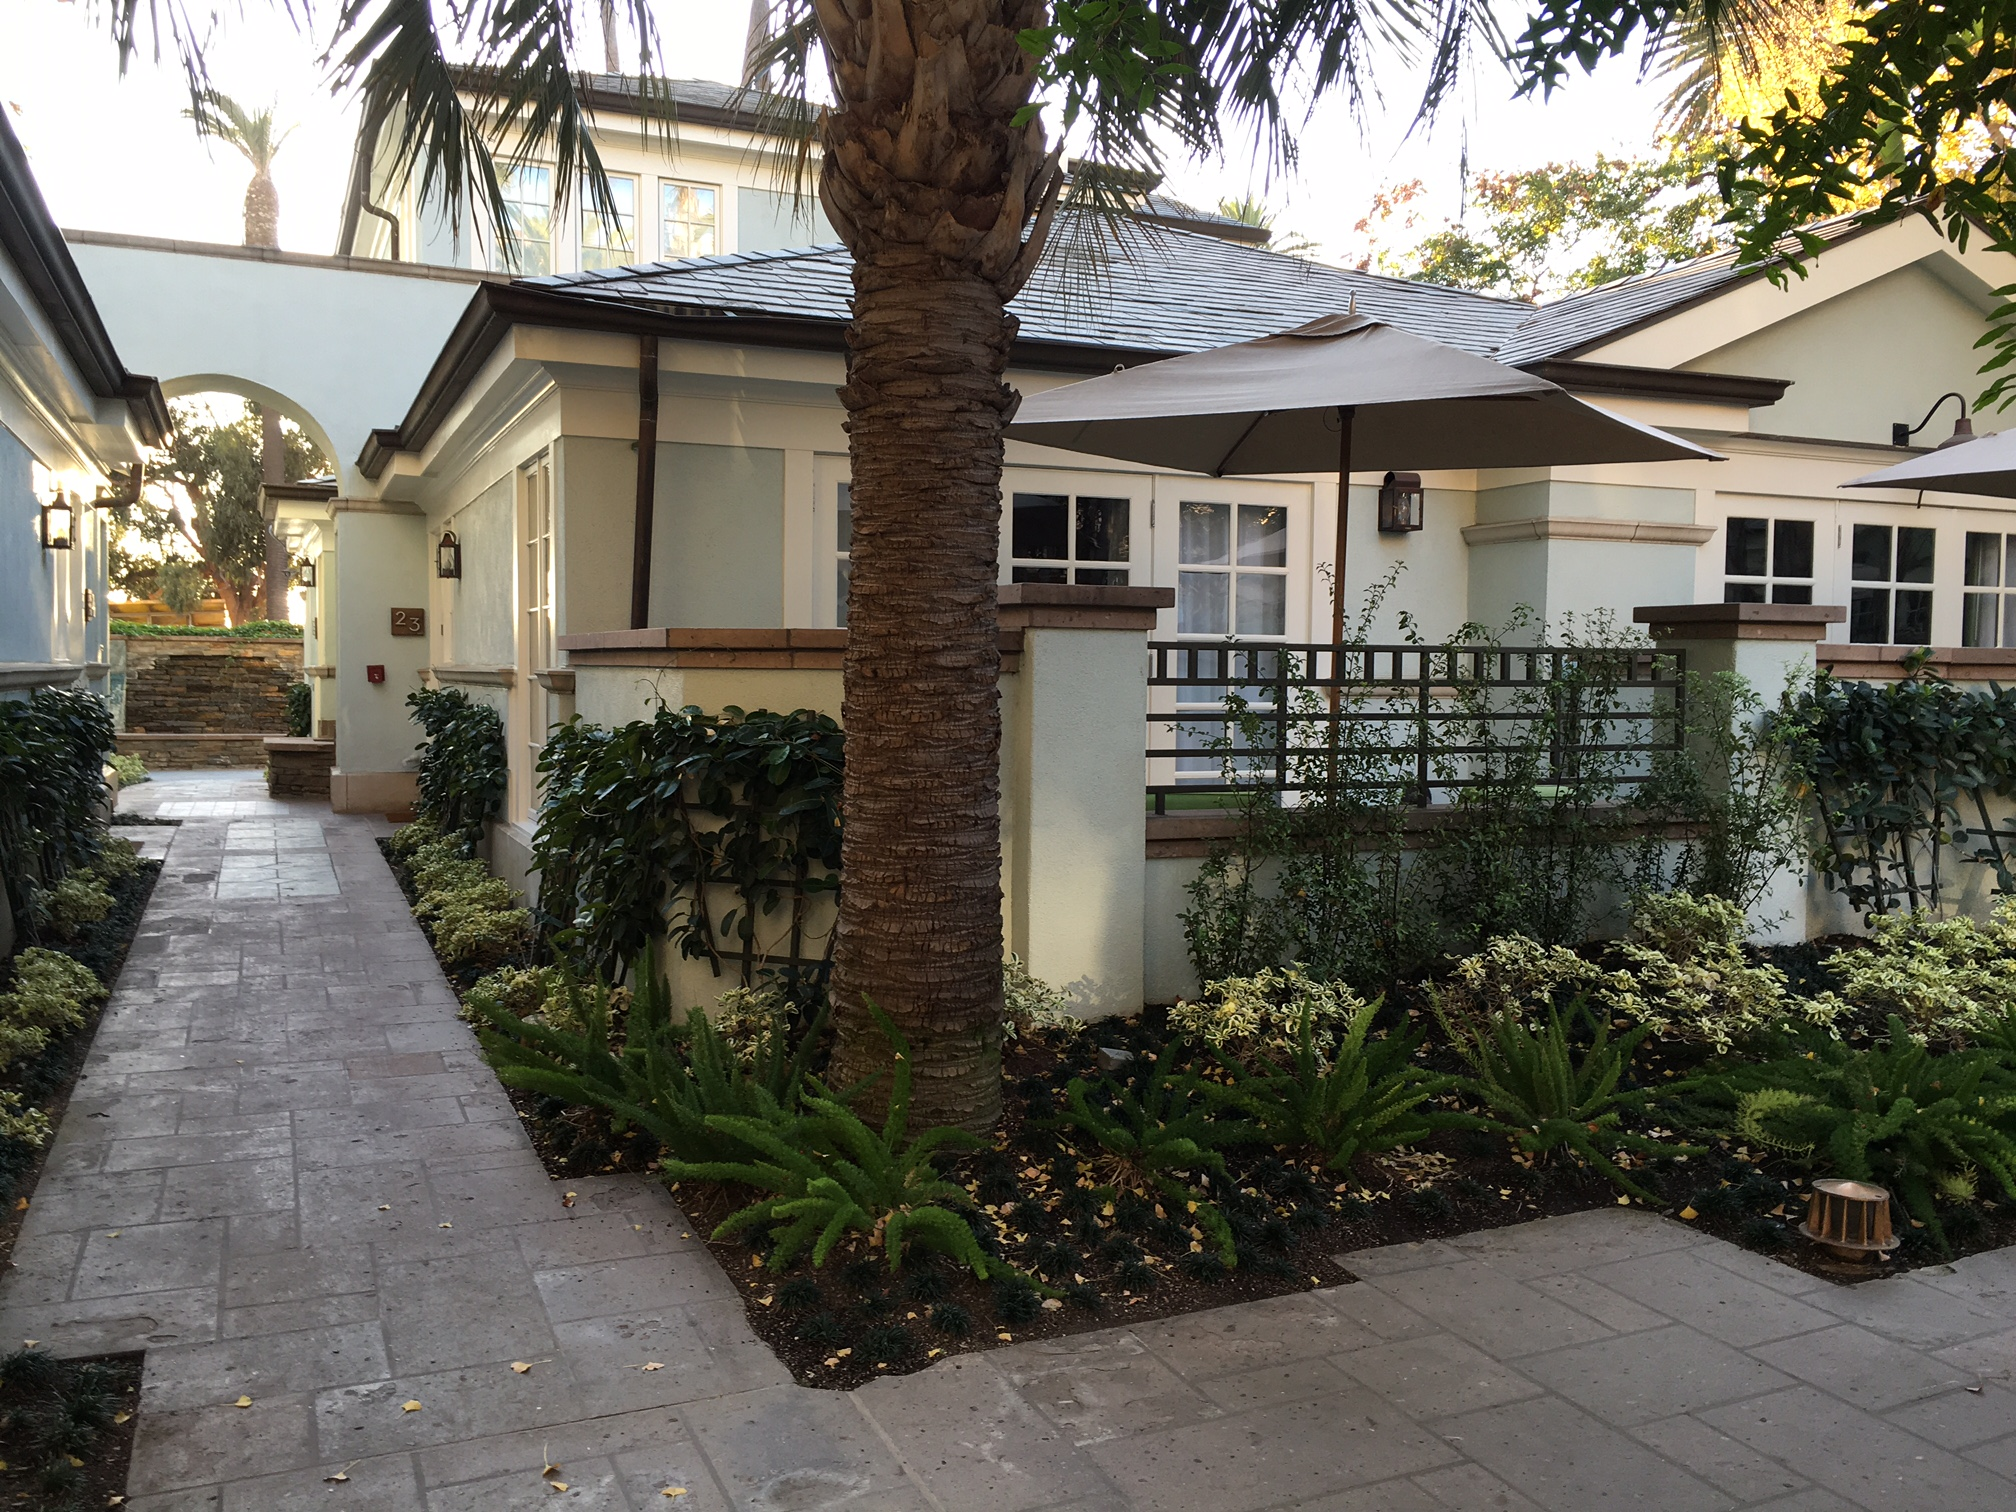 Thanksgiving with my family in L.A. - Fairmont Miramar Hotel & Bungalows in Santa Monica